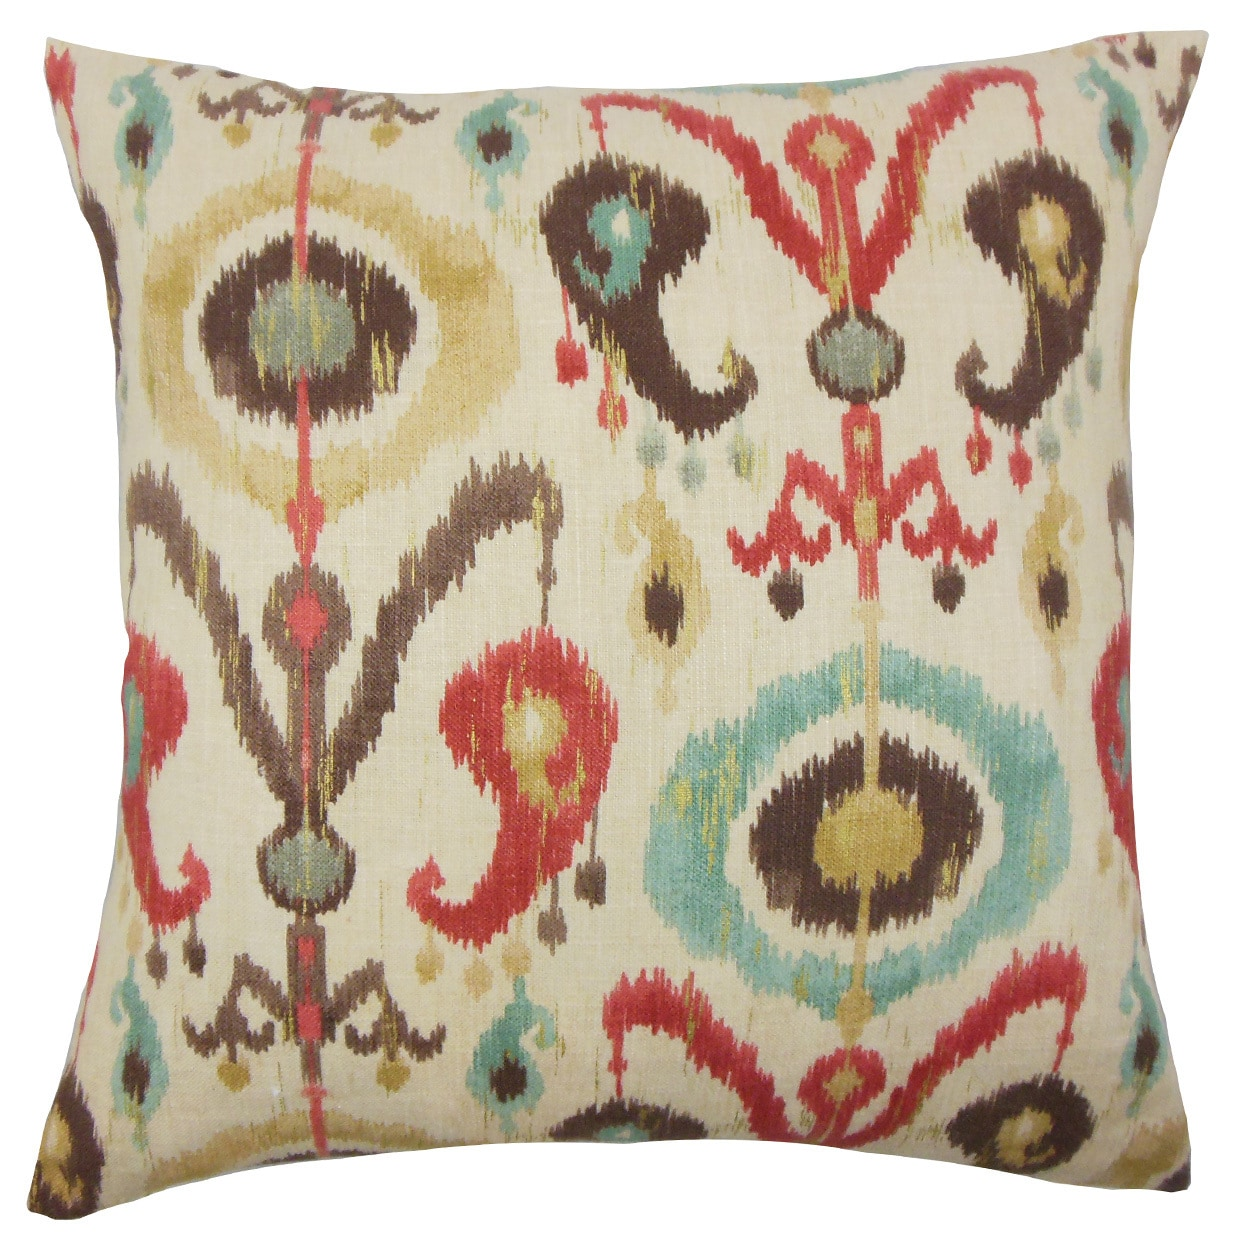 Details about Ikea Ikat Throw Pillow Cover N/A 18 x 18